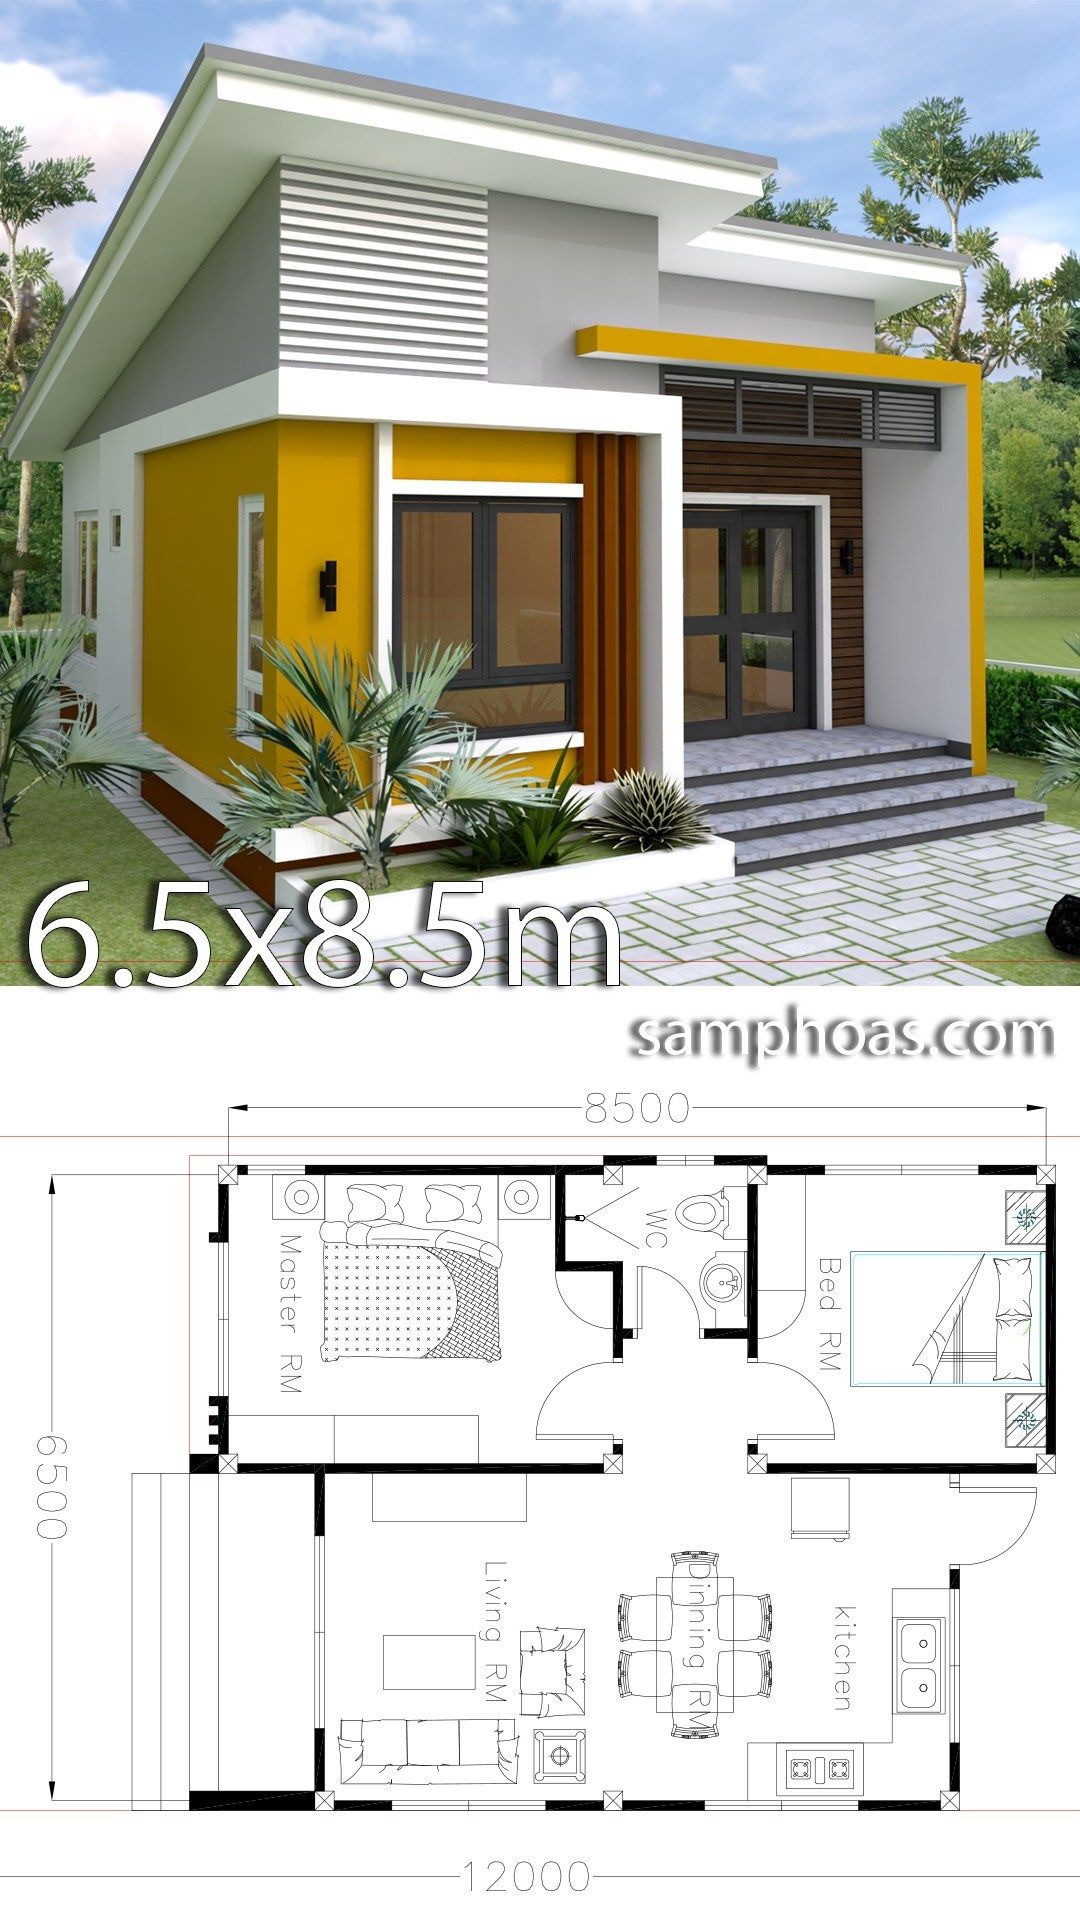 Small House Designs and Floor Plans Fresh Small Home Design Plan 6 5x8 5m with 2 Bedrooms